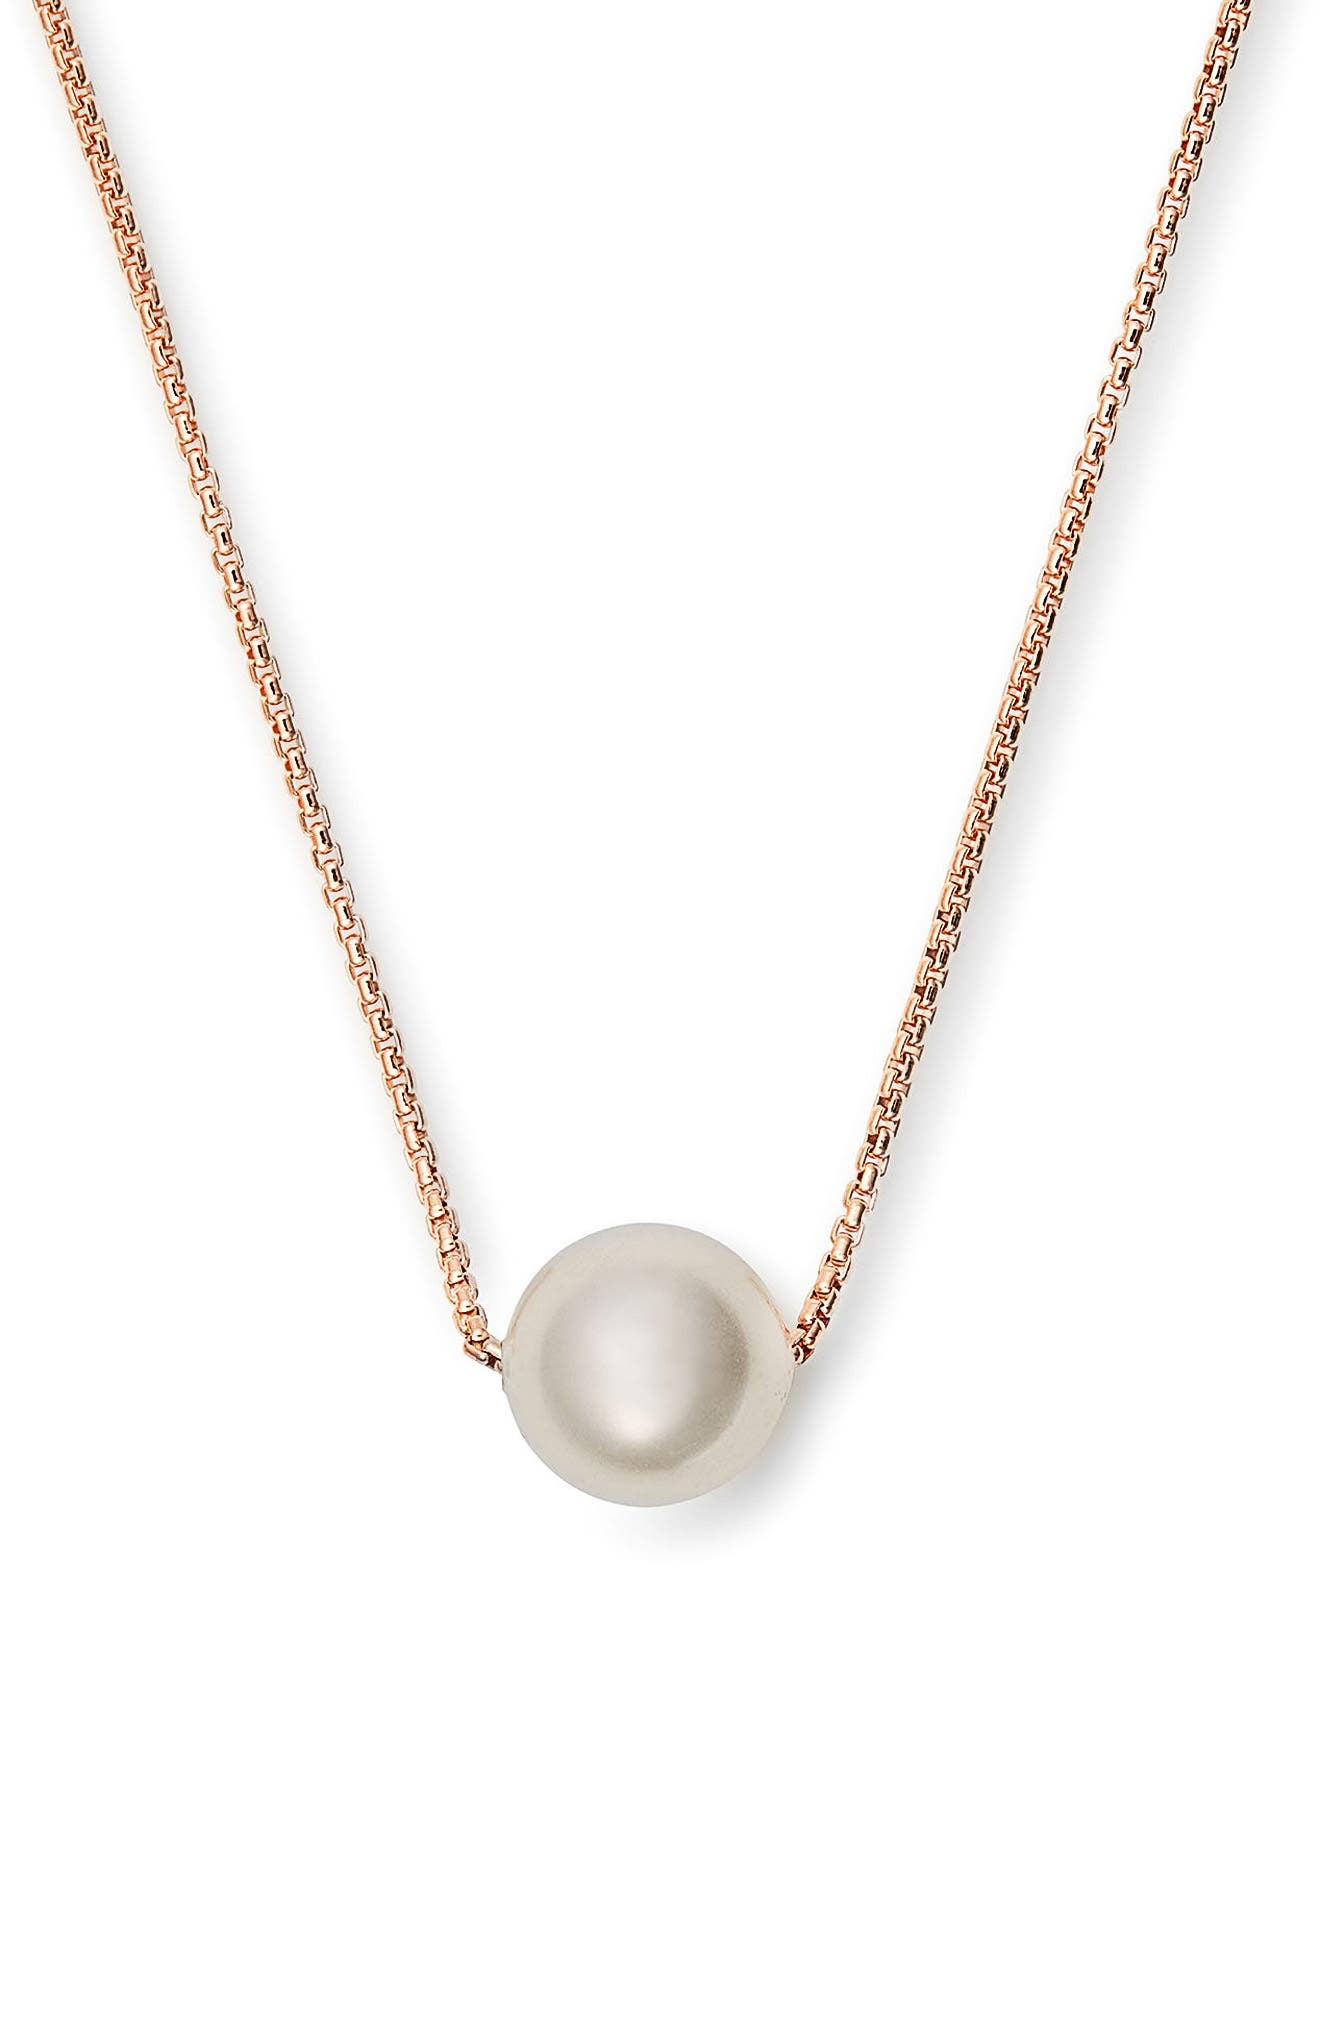 White Sea Sultry Adjustable Necklace,                         Main,                         color, Rose Gold